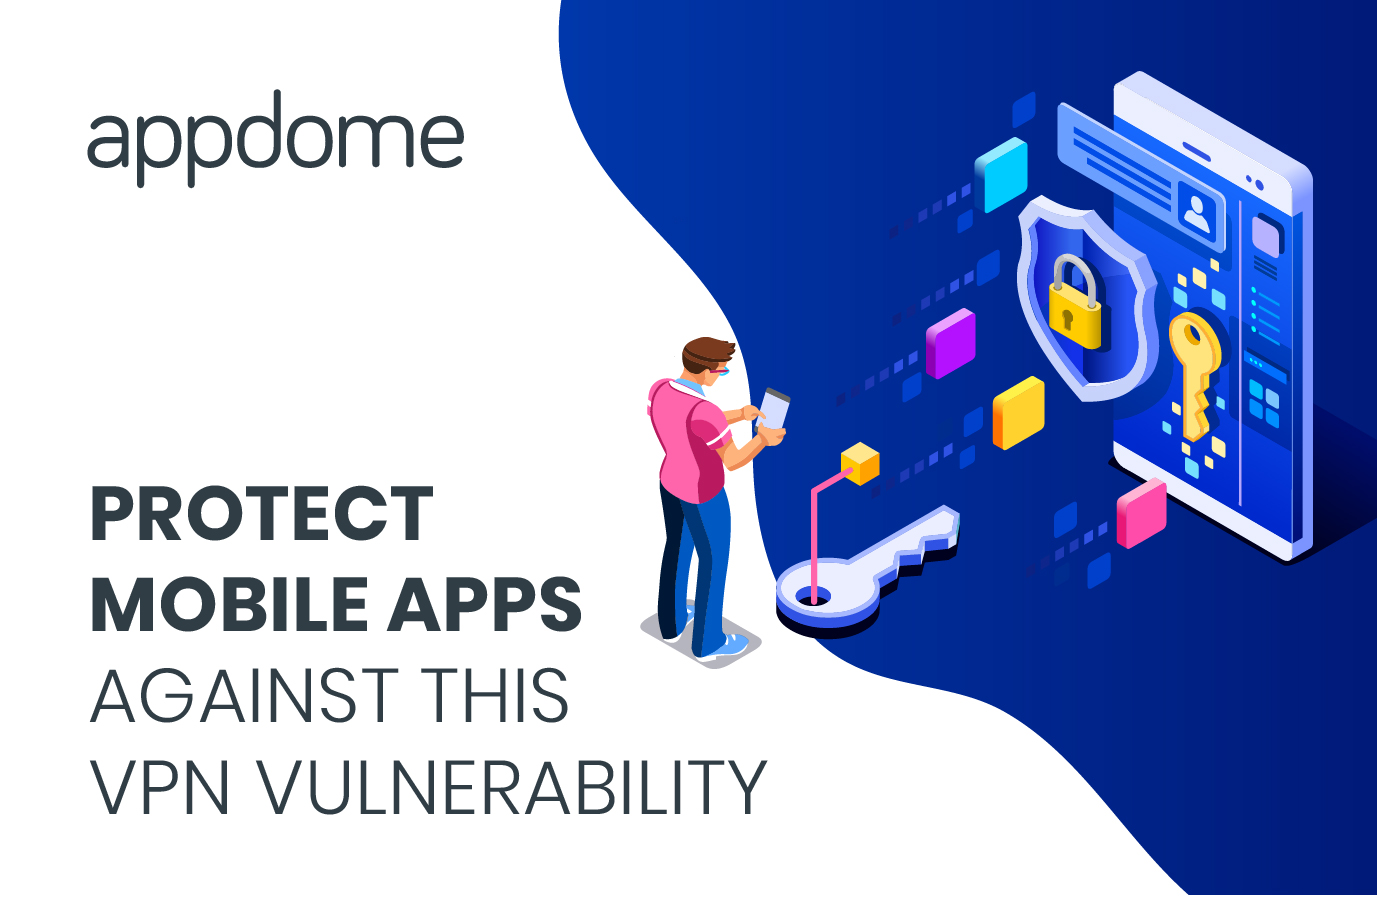 Protect Mobile Apps Against this VPN Vulnerability